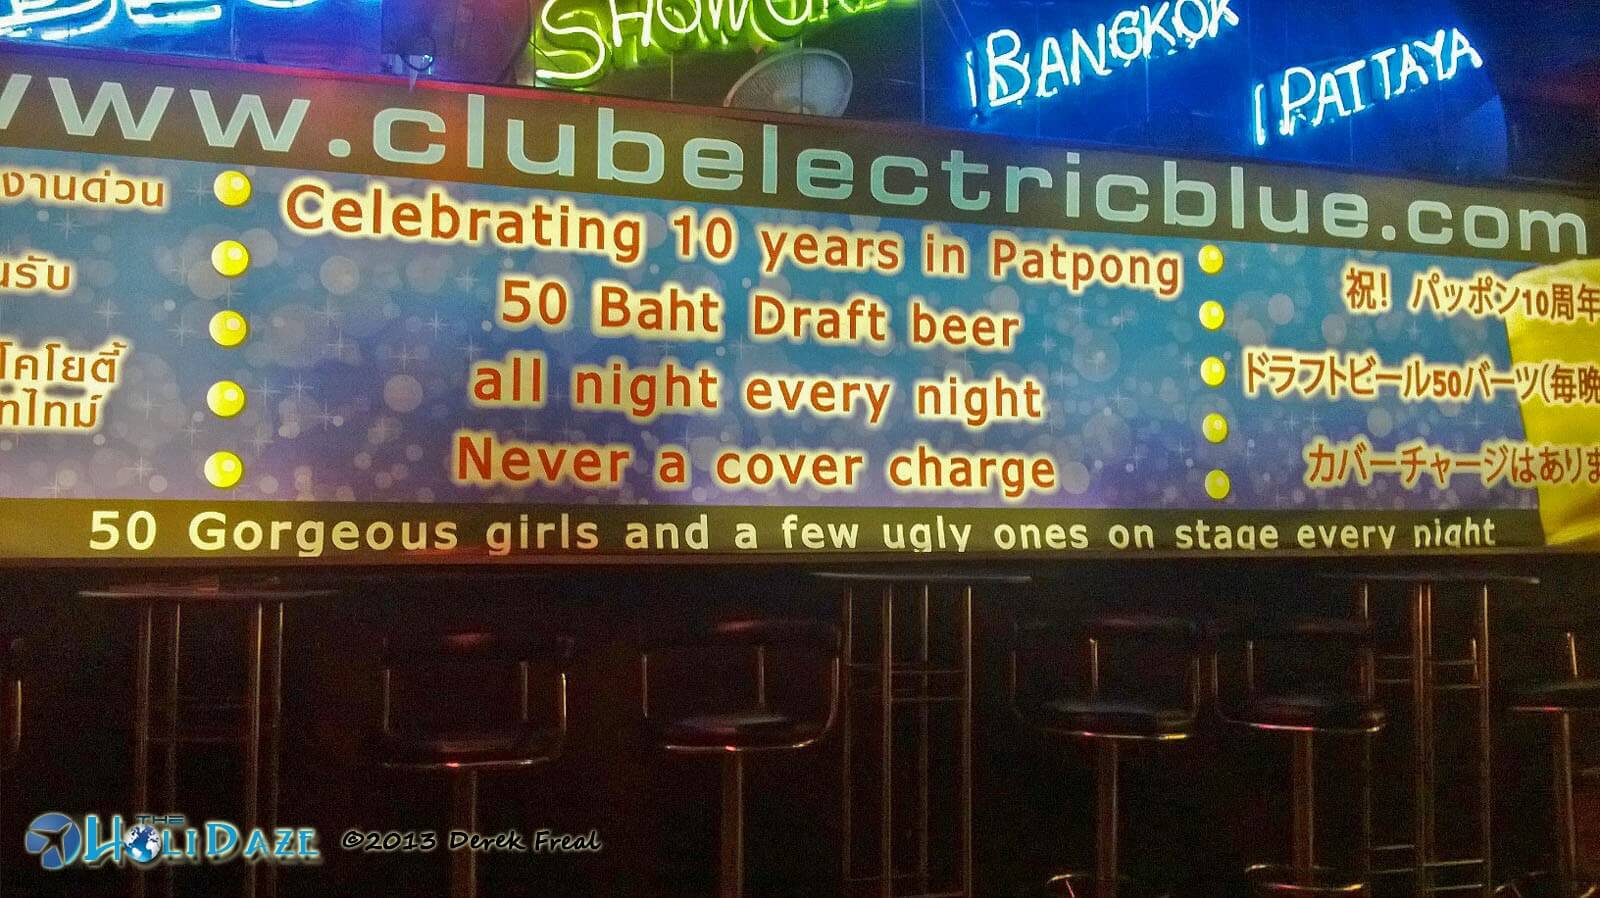 Bangkok nightlife in Patpong. Have to appreciate truth in advertising, no?